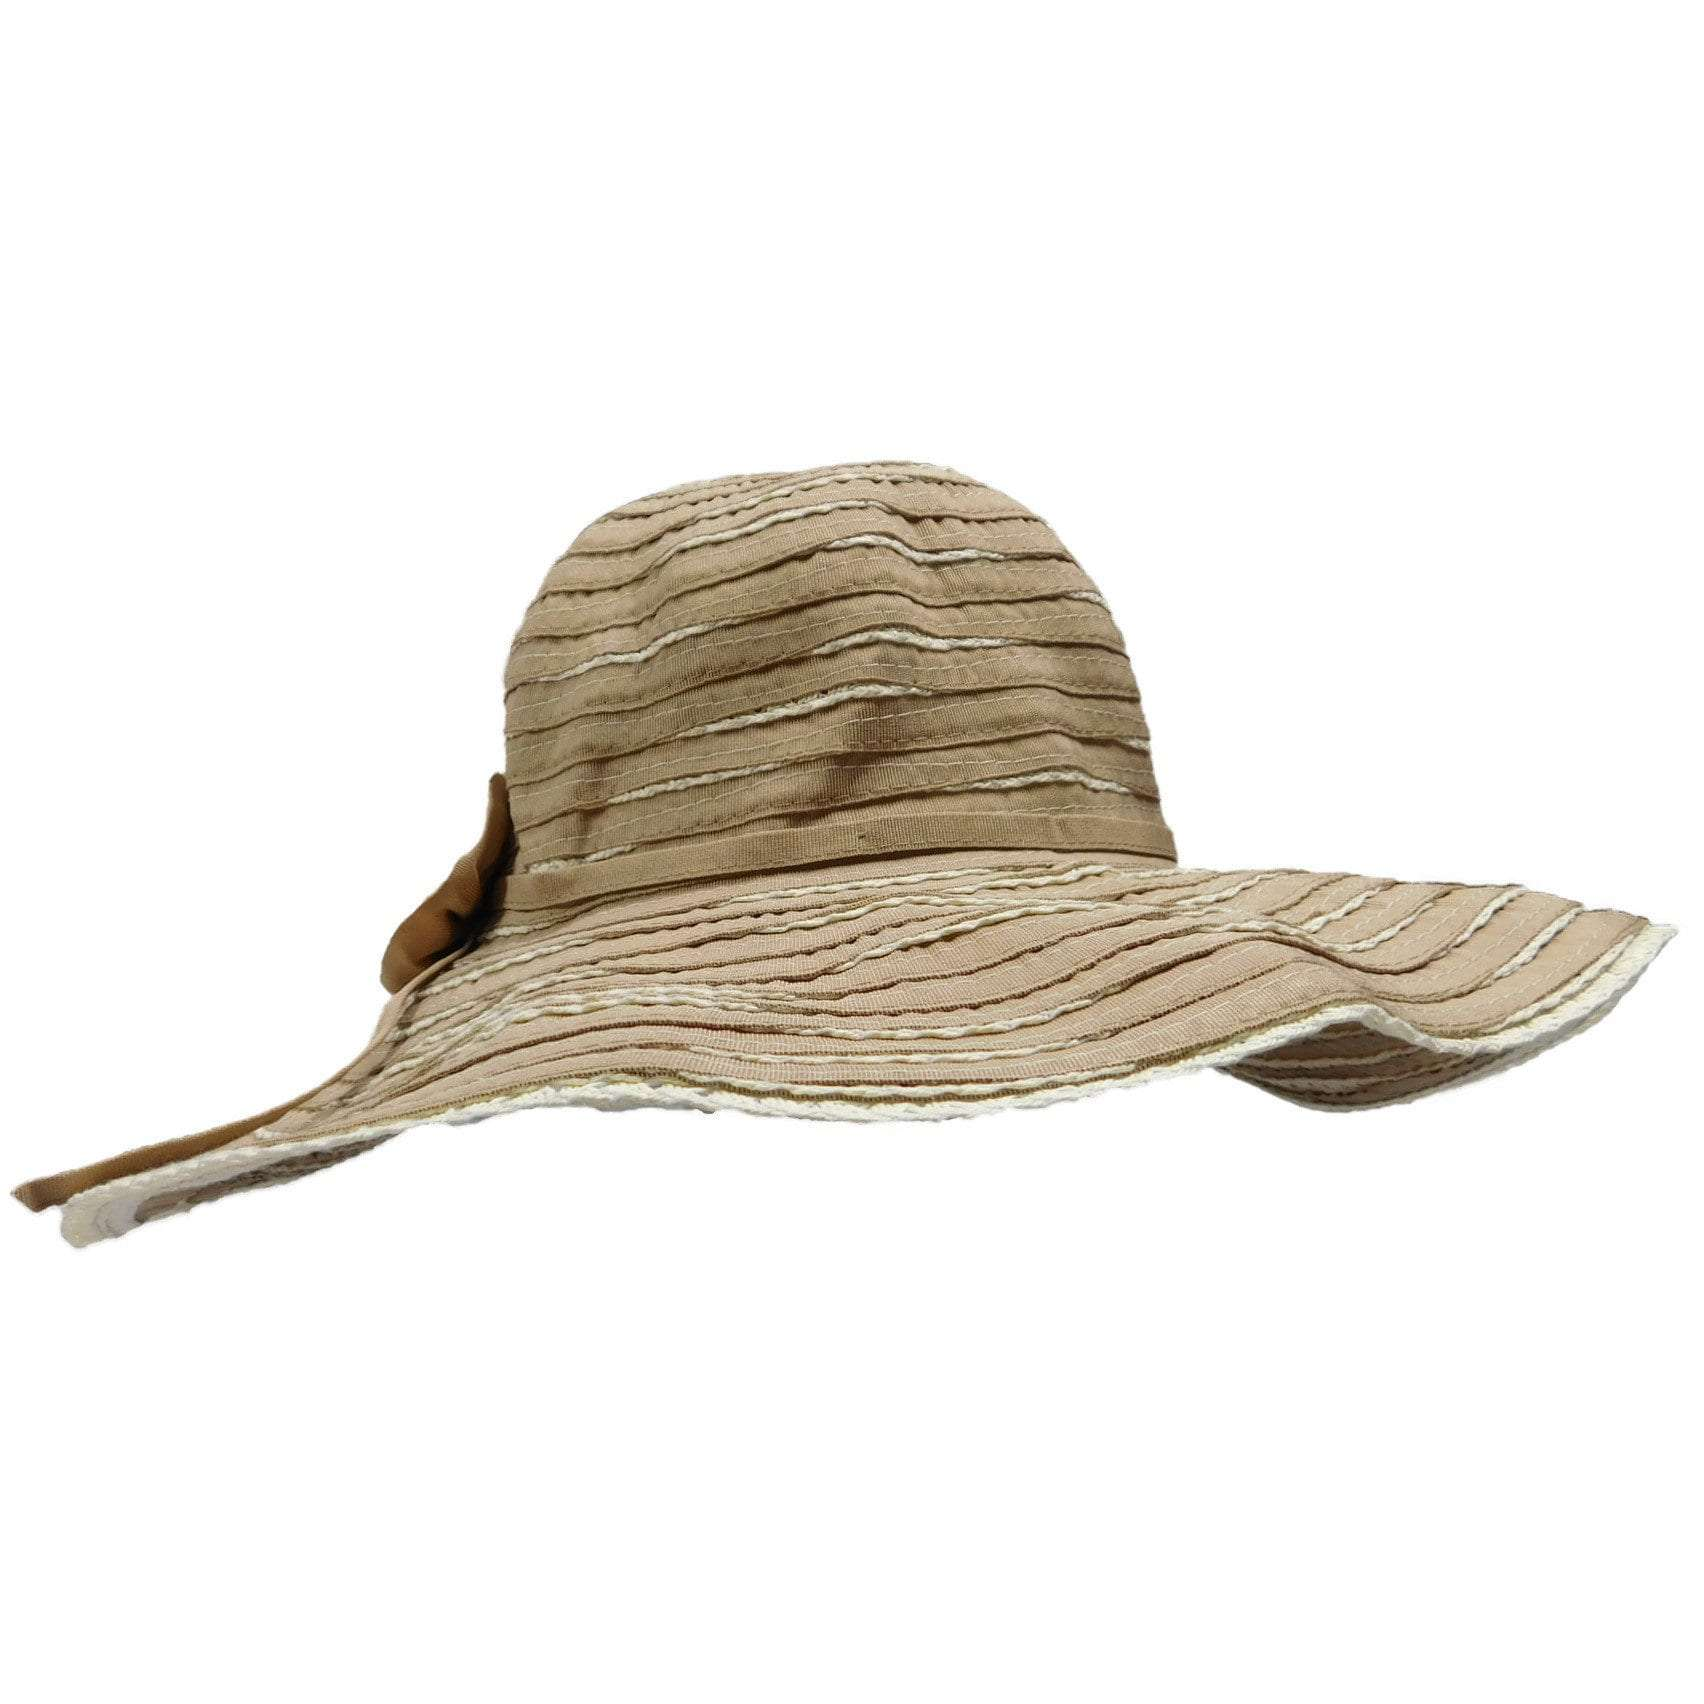 Spiral Sewn Ribbon and Straw Sun Hat by JSA for Women - SetarTrading Hats